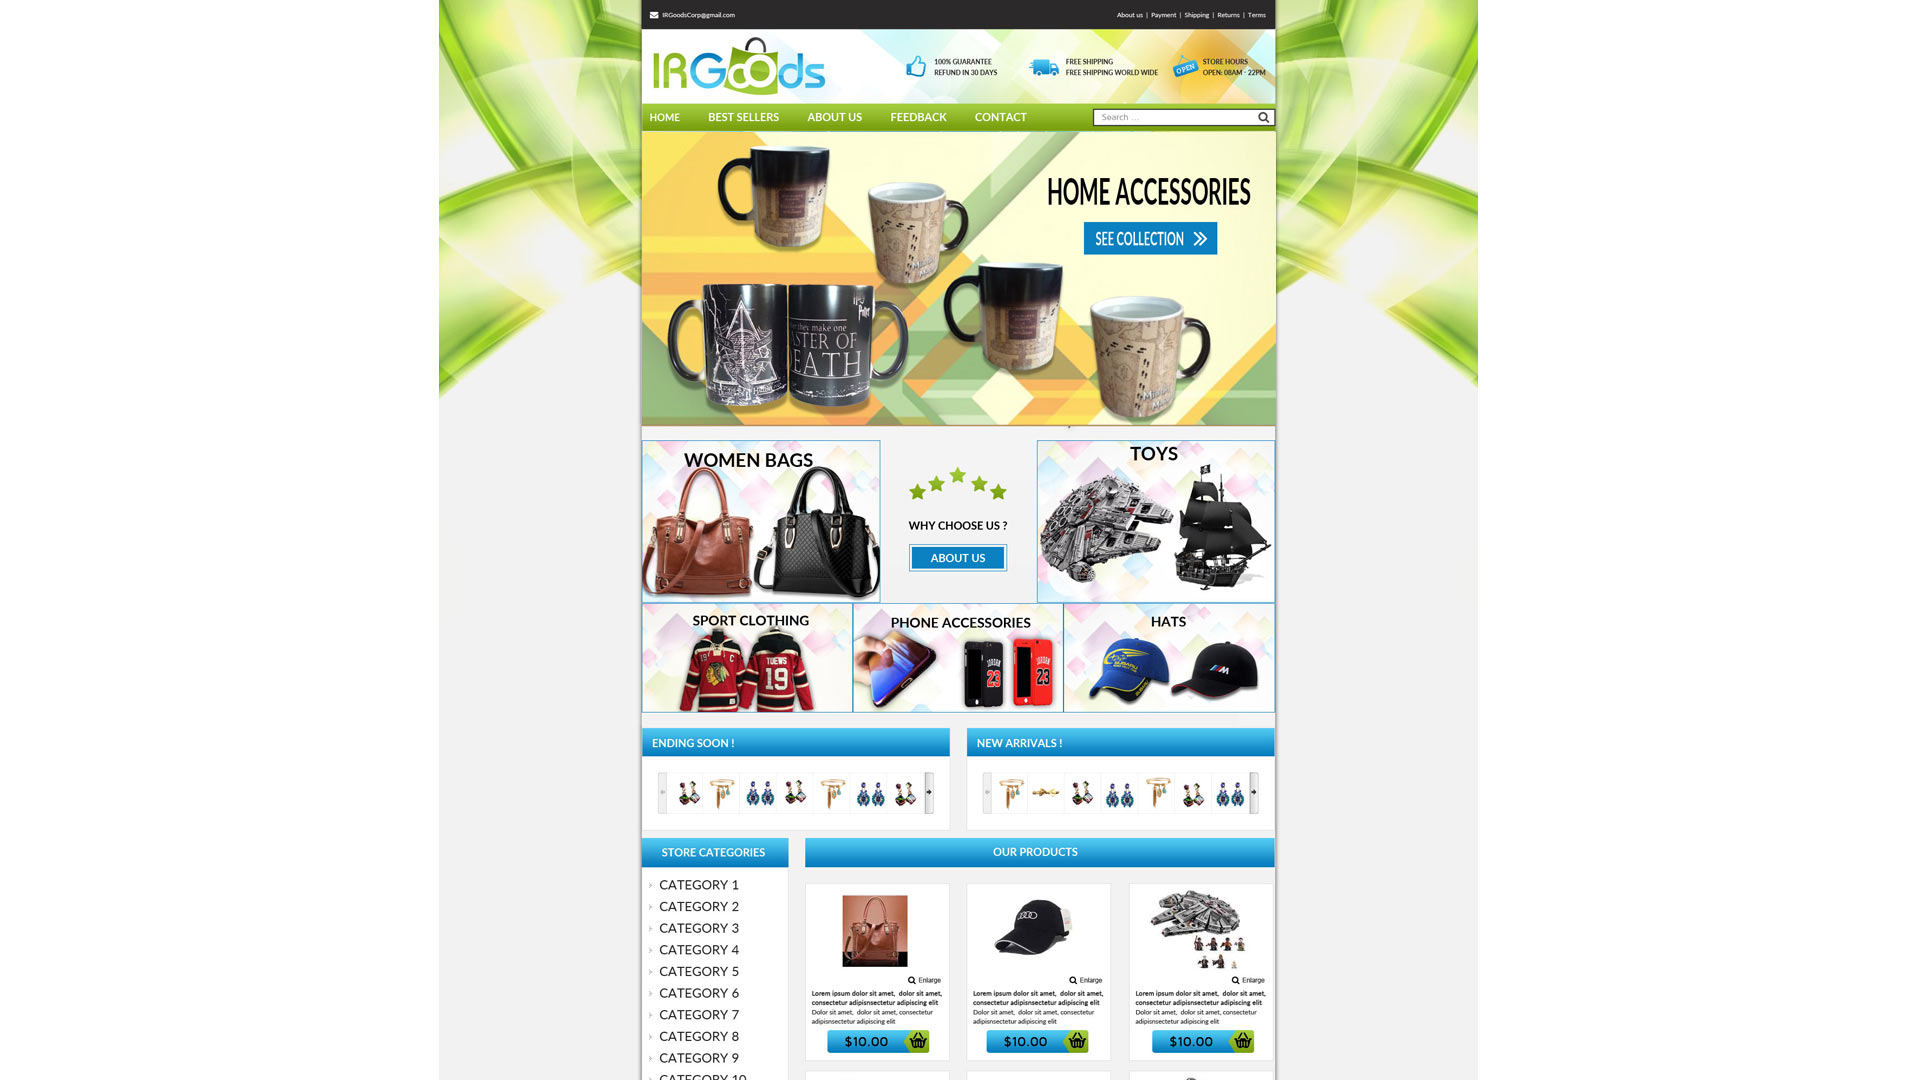 Nrngoods template ebay store zeinebay category templates stores ebay zeinebay pronofoot35fo Image collections